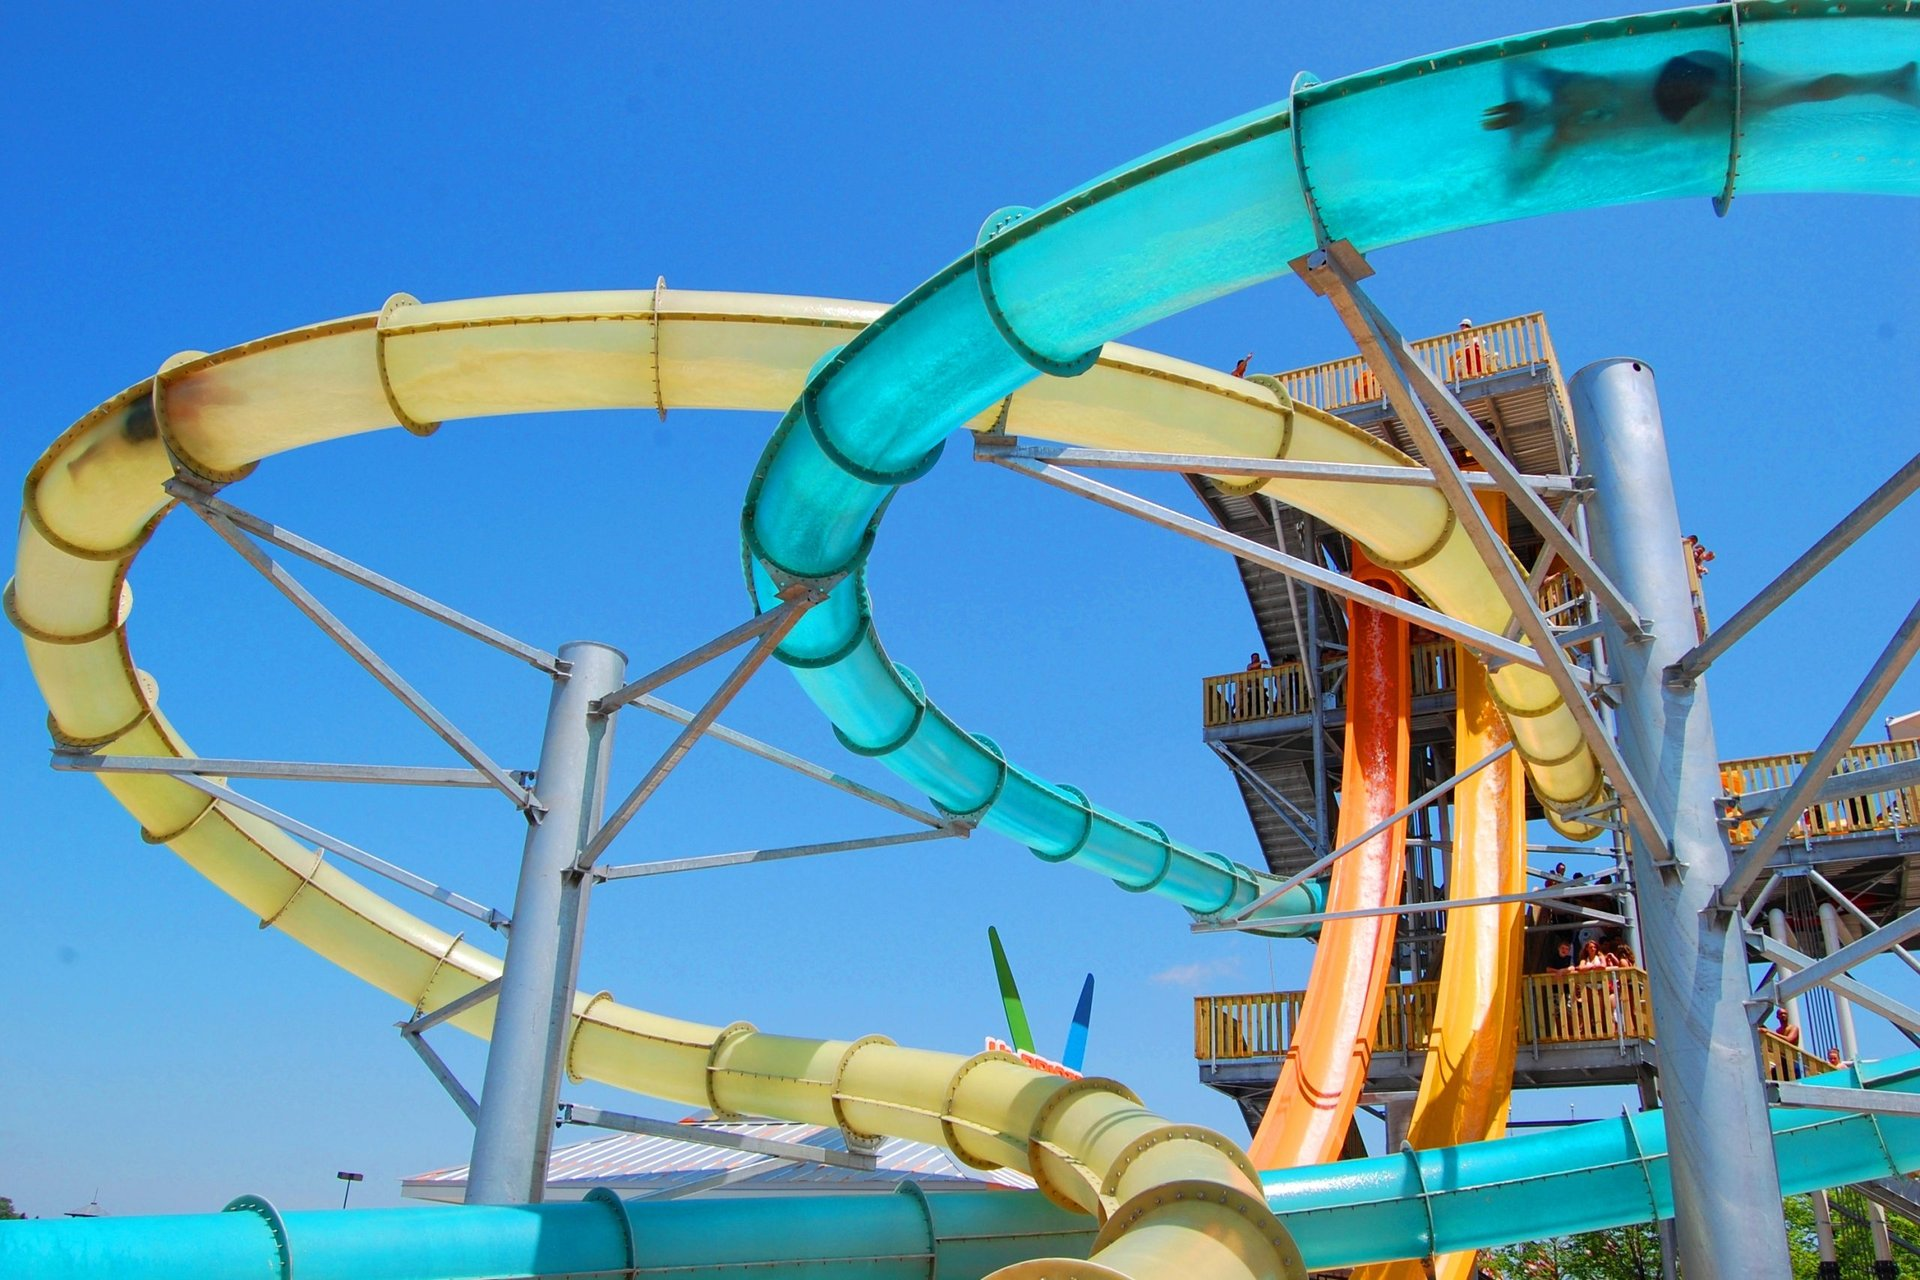 HHCH Blue and Yellow Waterslide